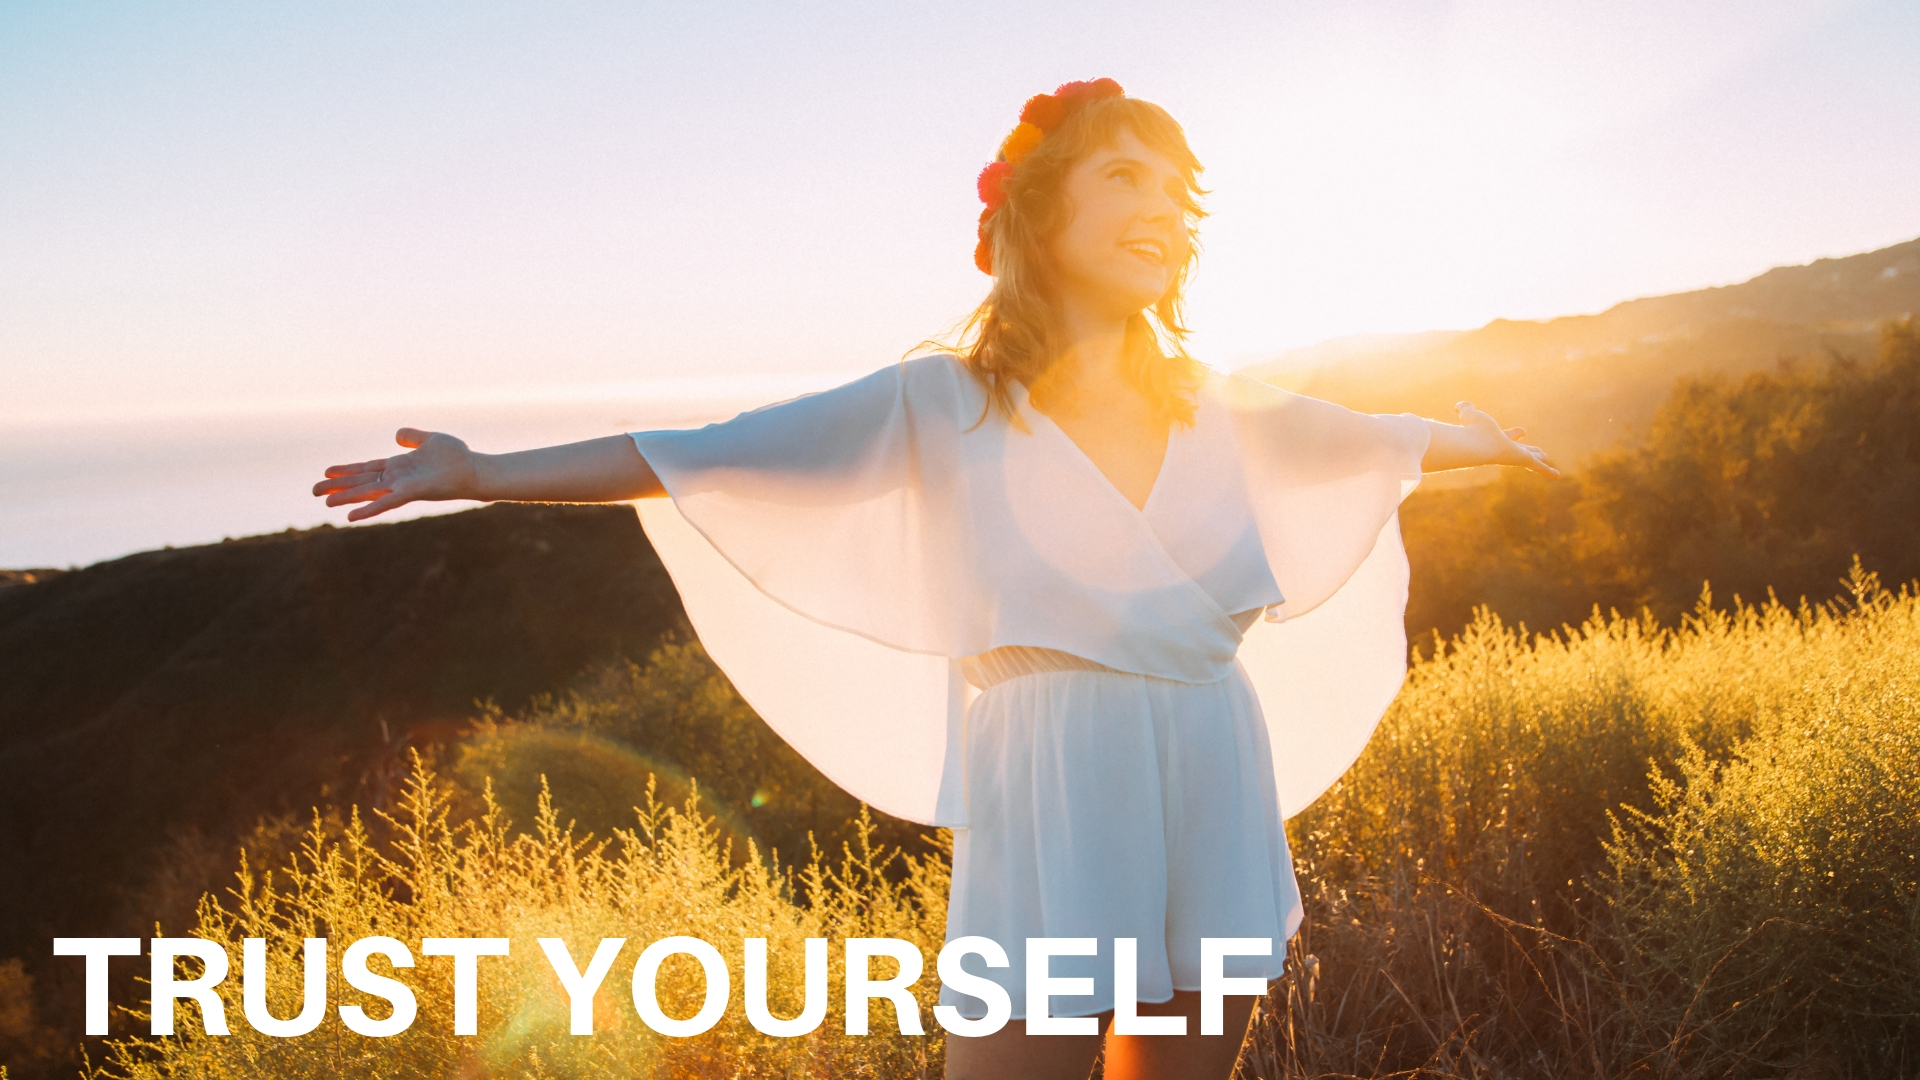 Trust Yourself Promo Page Banner Image.jpg